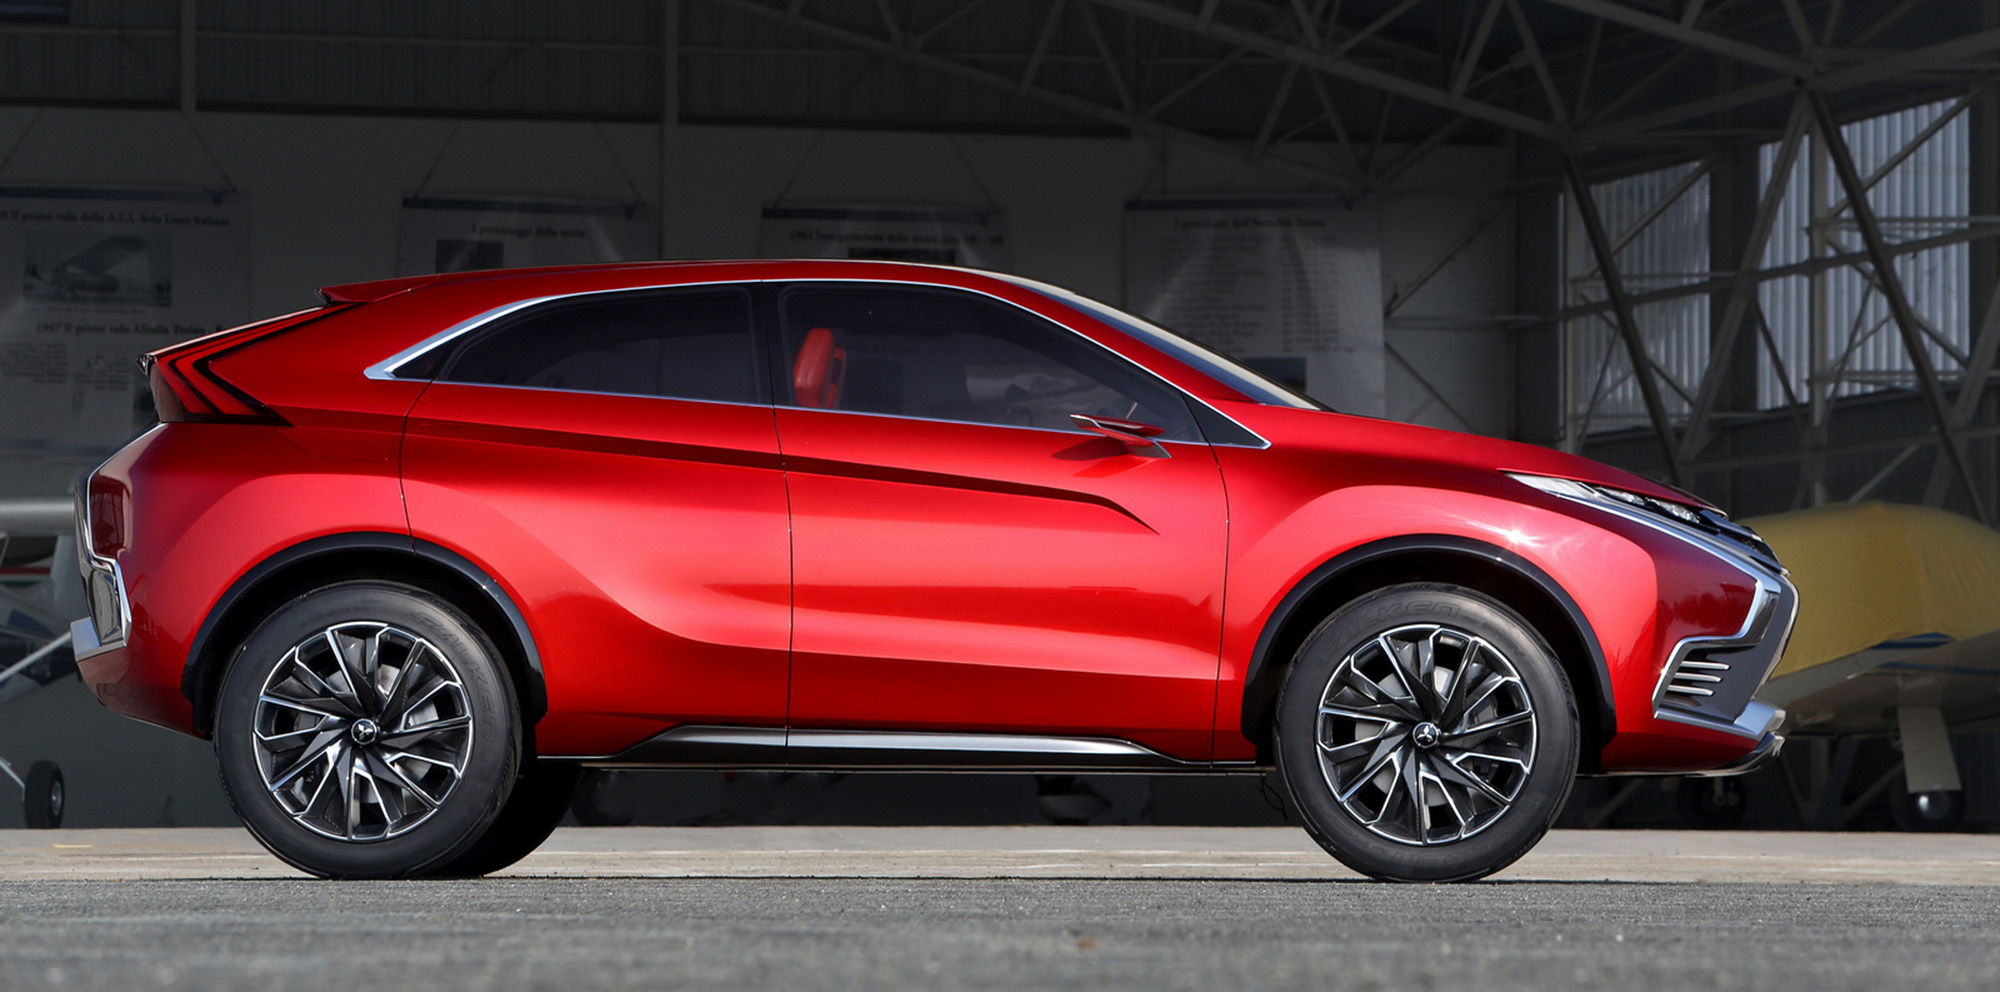 Mitsubishi XR-PHEV II Concept provides clues about next ...